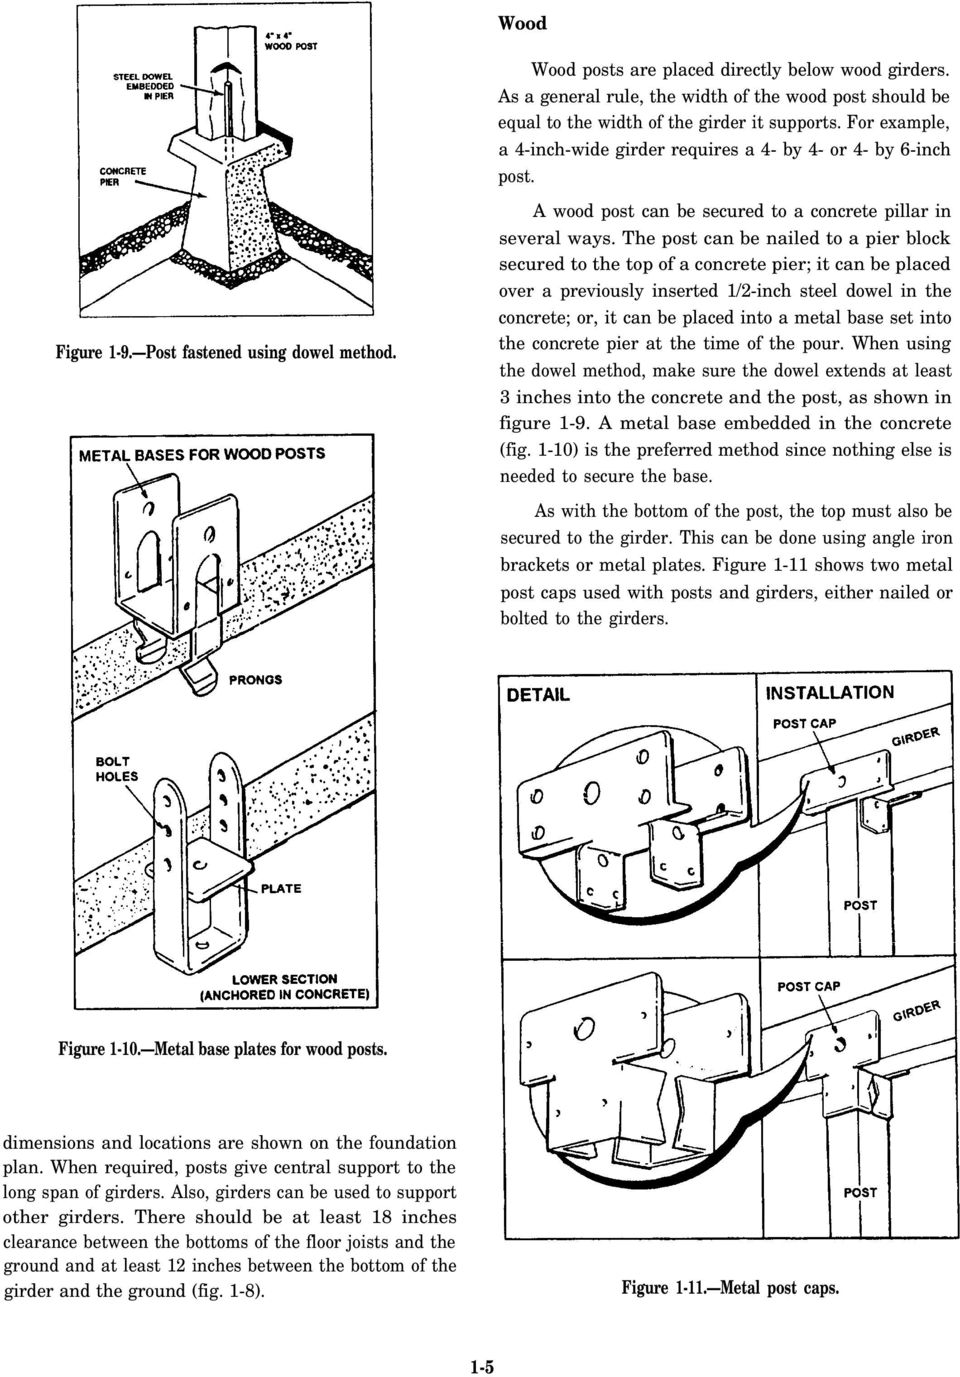 The post can be nailed to a pier block secured to the top of a concrete pier; it can be placed over a previously inserted 1/2-inch steel dowel in the concrete; or, it can be placed into a metal base